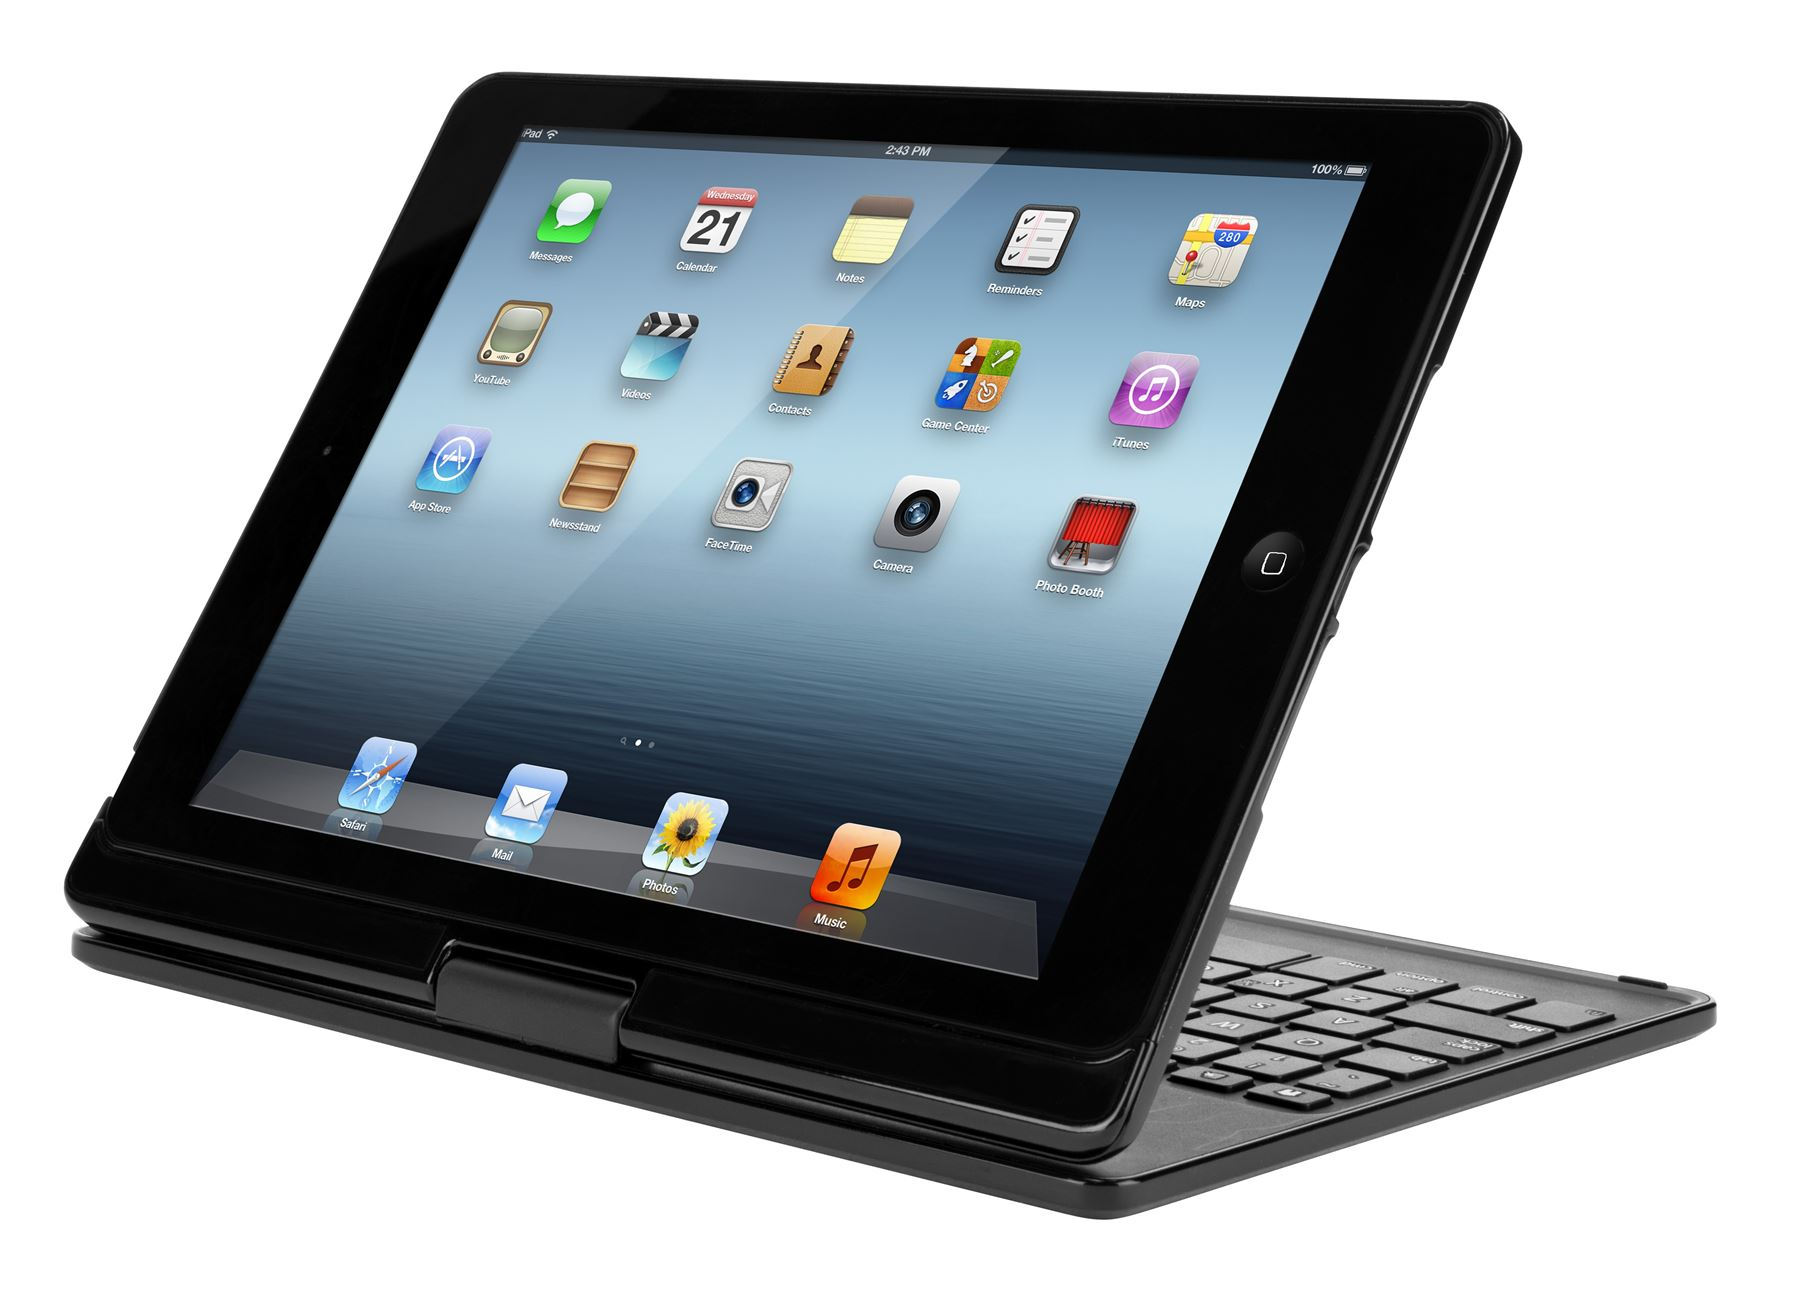 Ipad Air 2 Versatype 4 In 1 Keyboard Case For Ipad Air Ipad Air 2